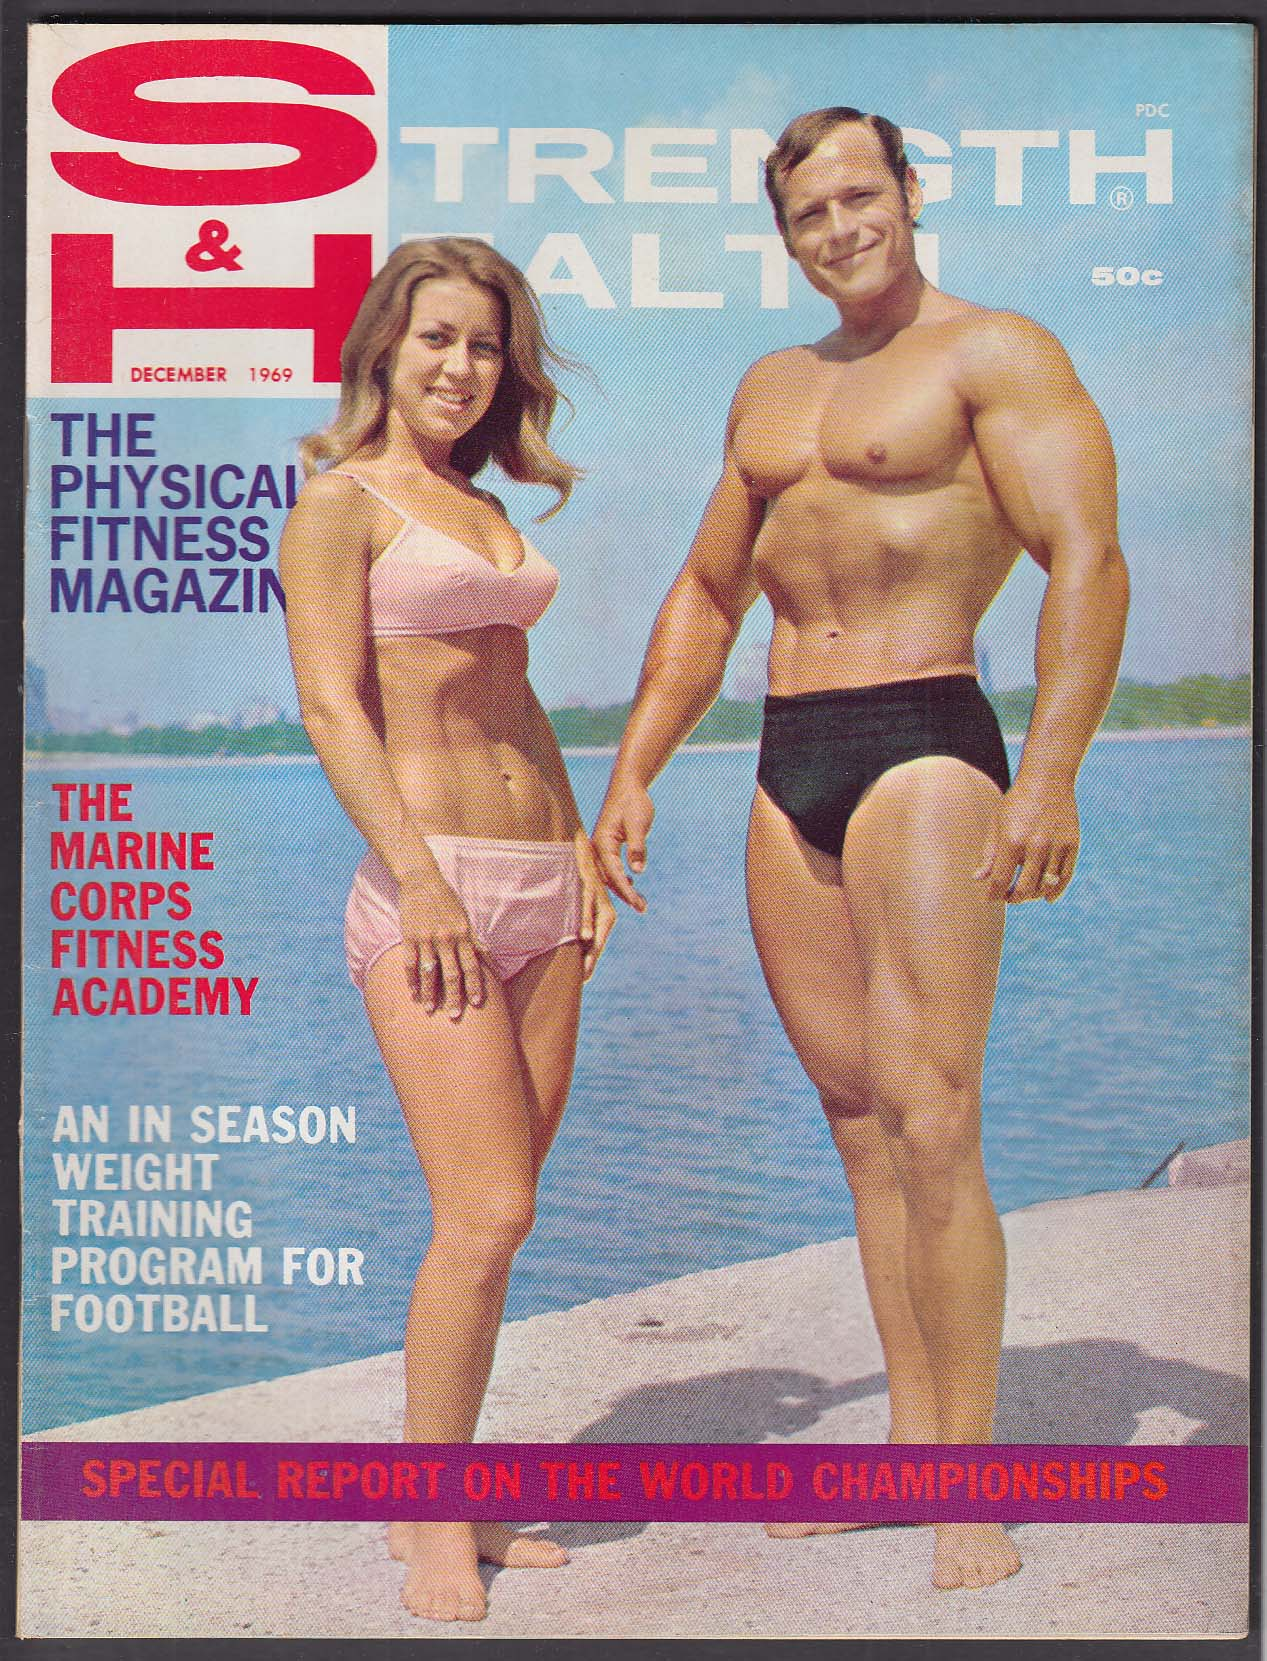 STRENGTH & HEALTH Curt & Sharon Haywood Bill Grant Ken Patera + 12 1969